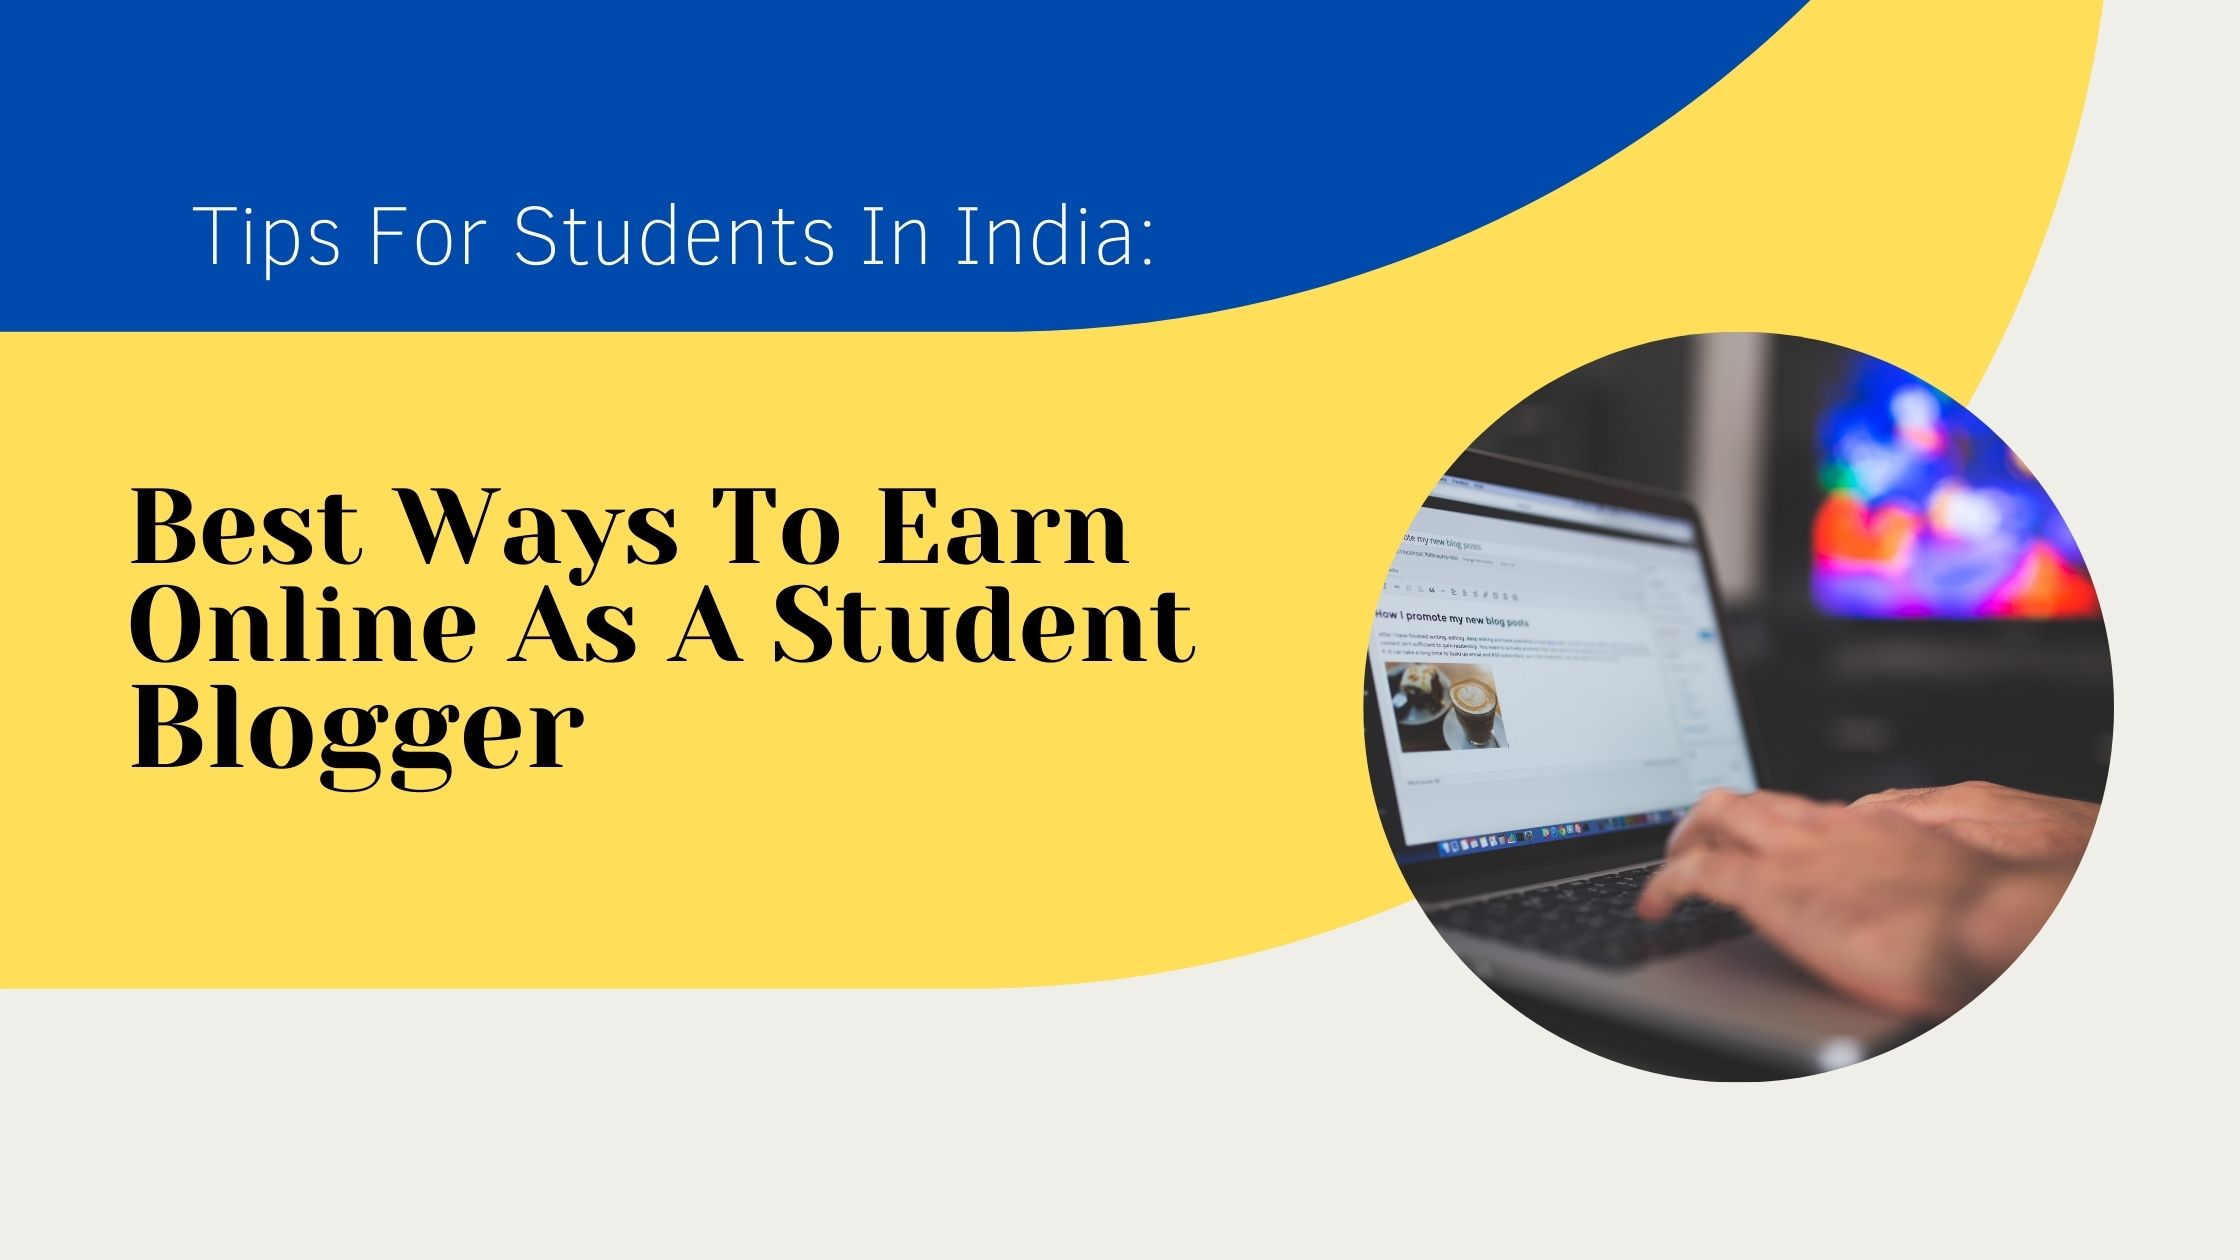 how-to-earn-online-as-a-student-in-india-blogging